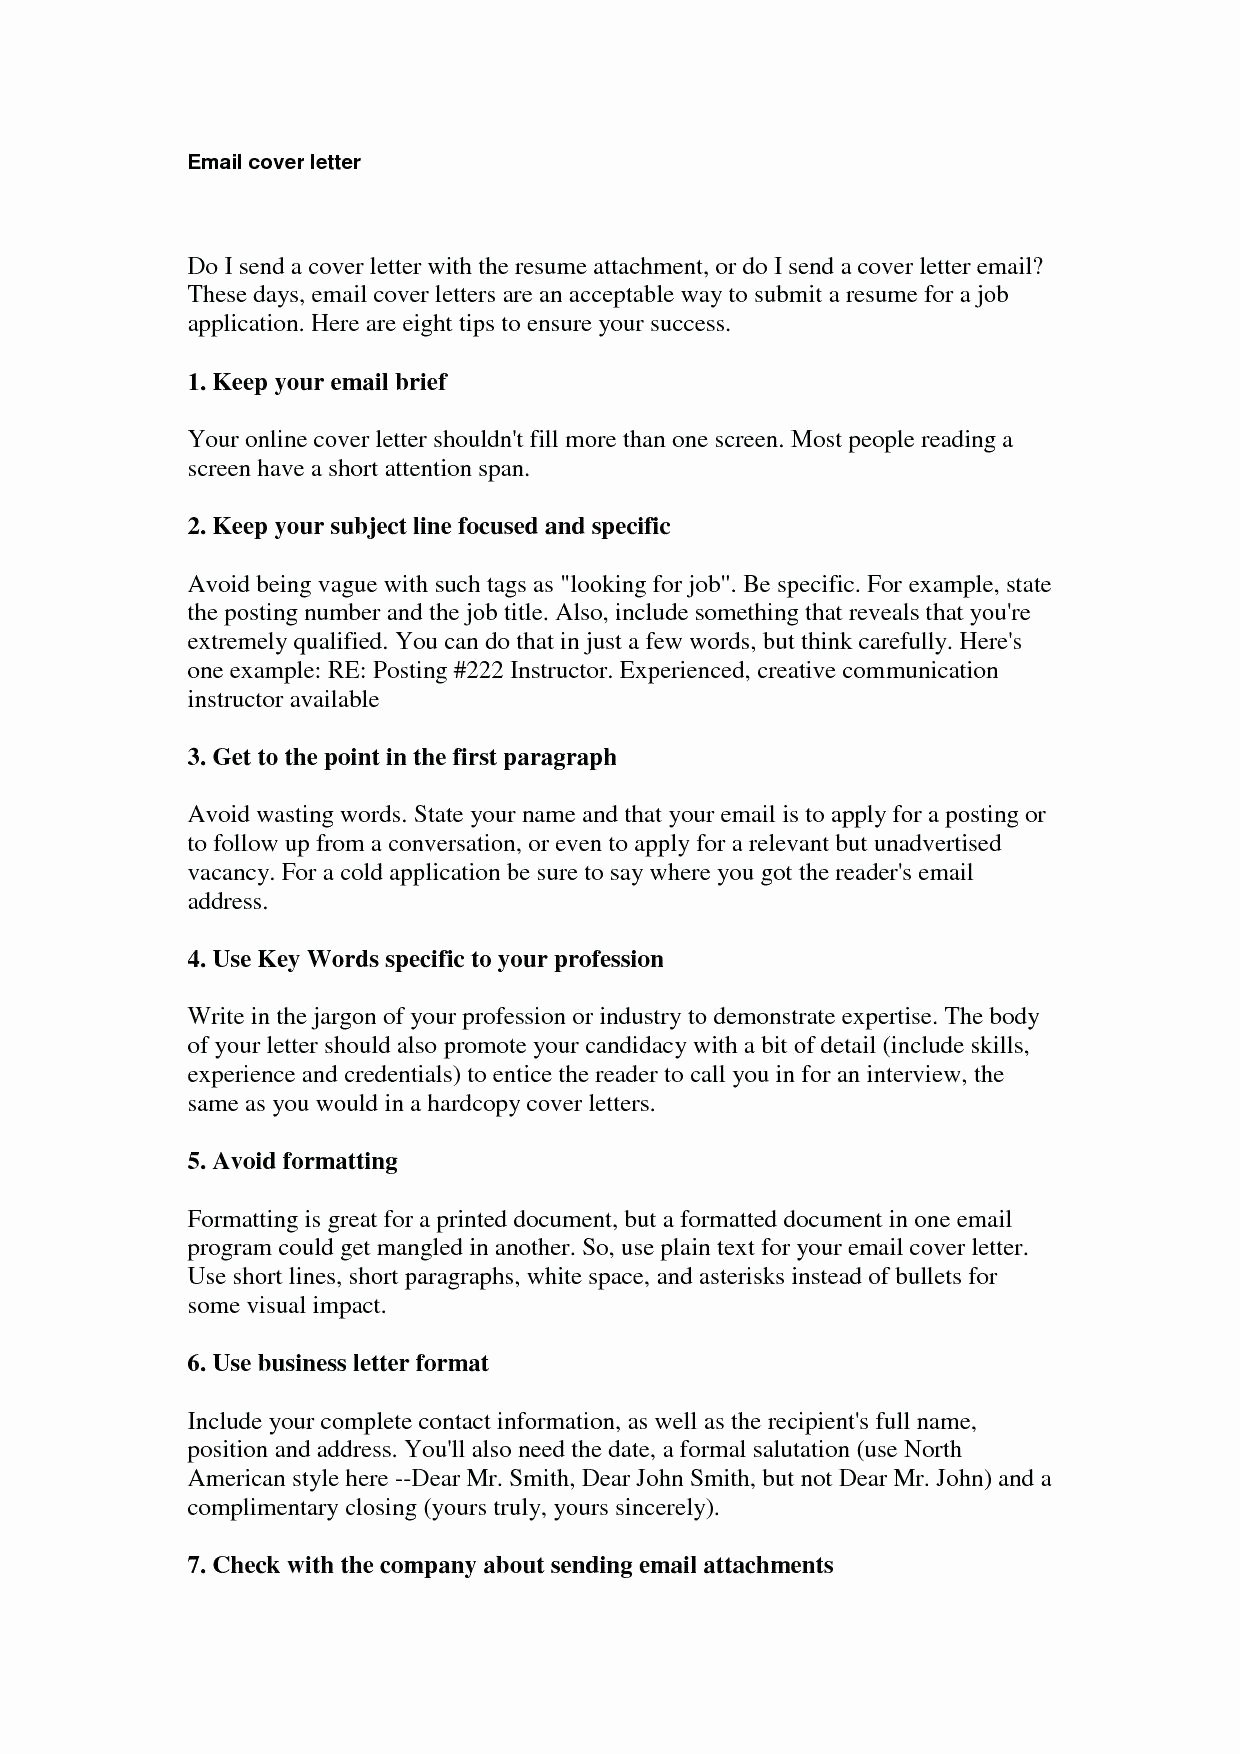 Email Cover Letter Template Best Of Template Cover Letter Template Email